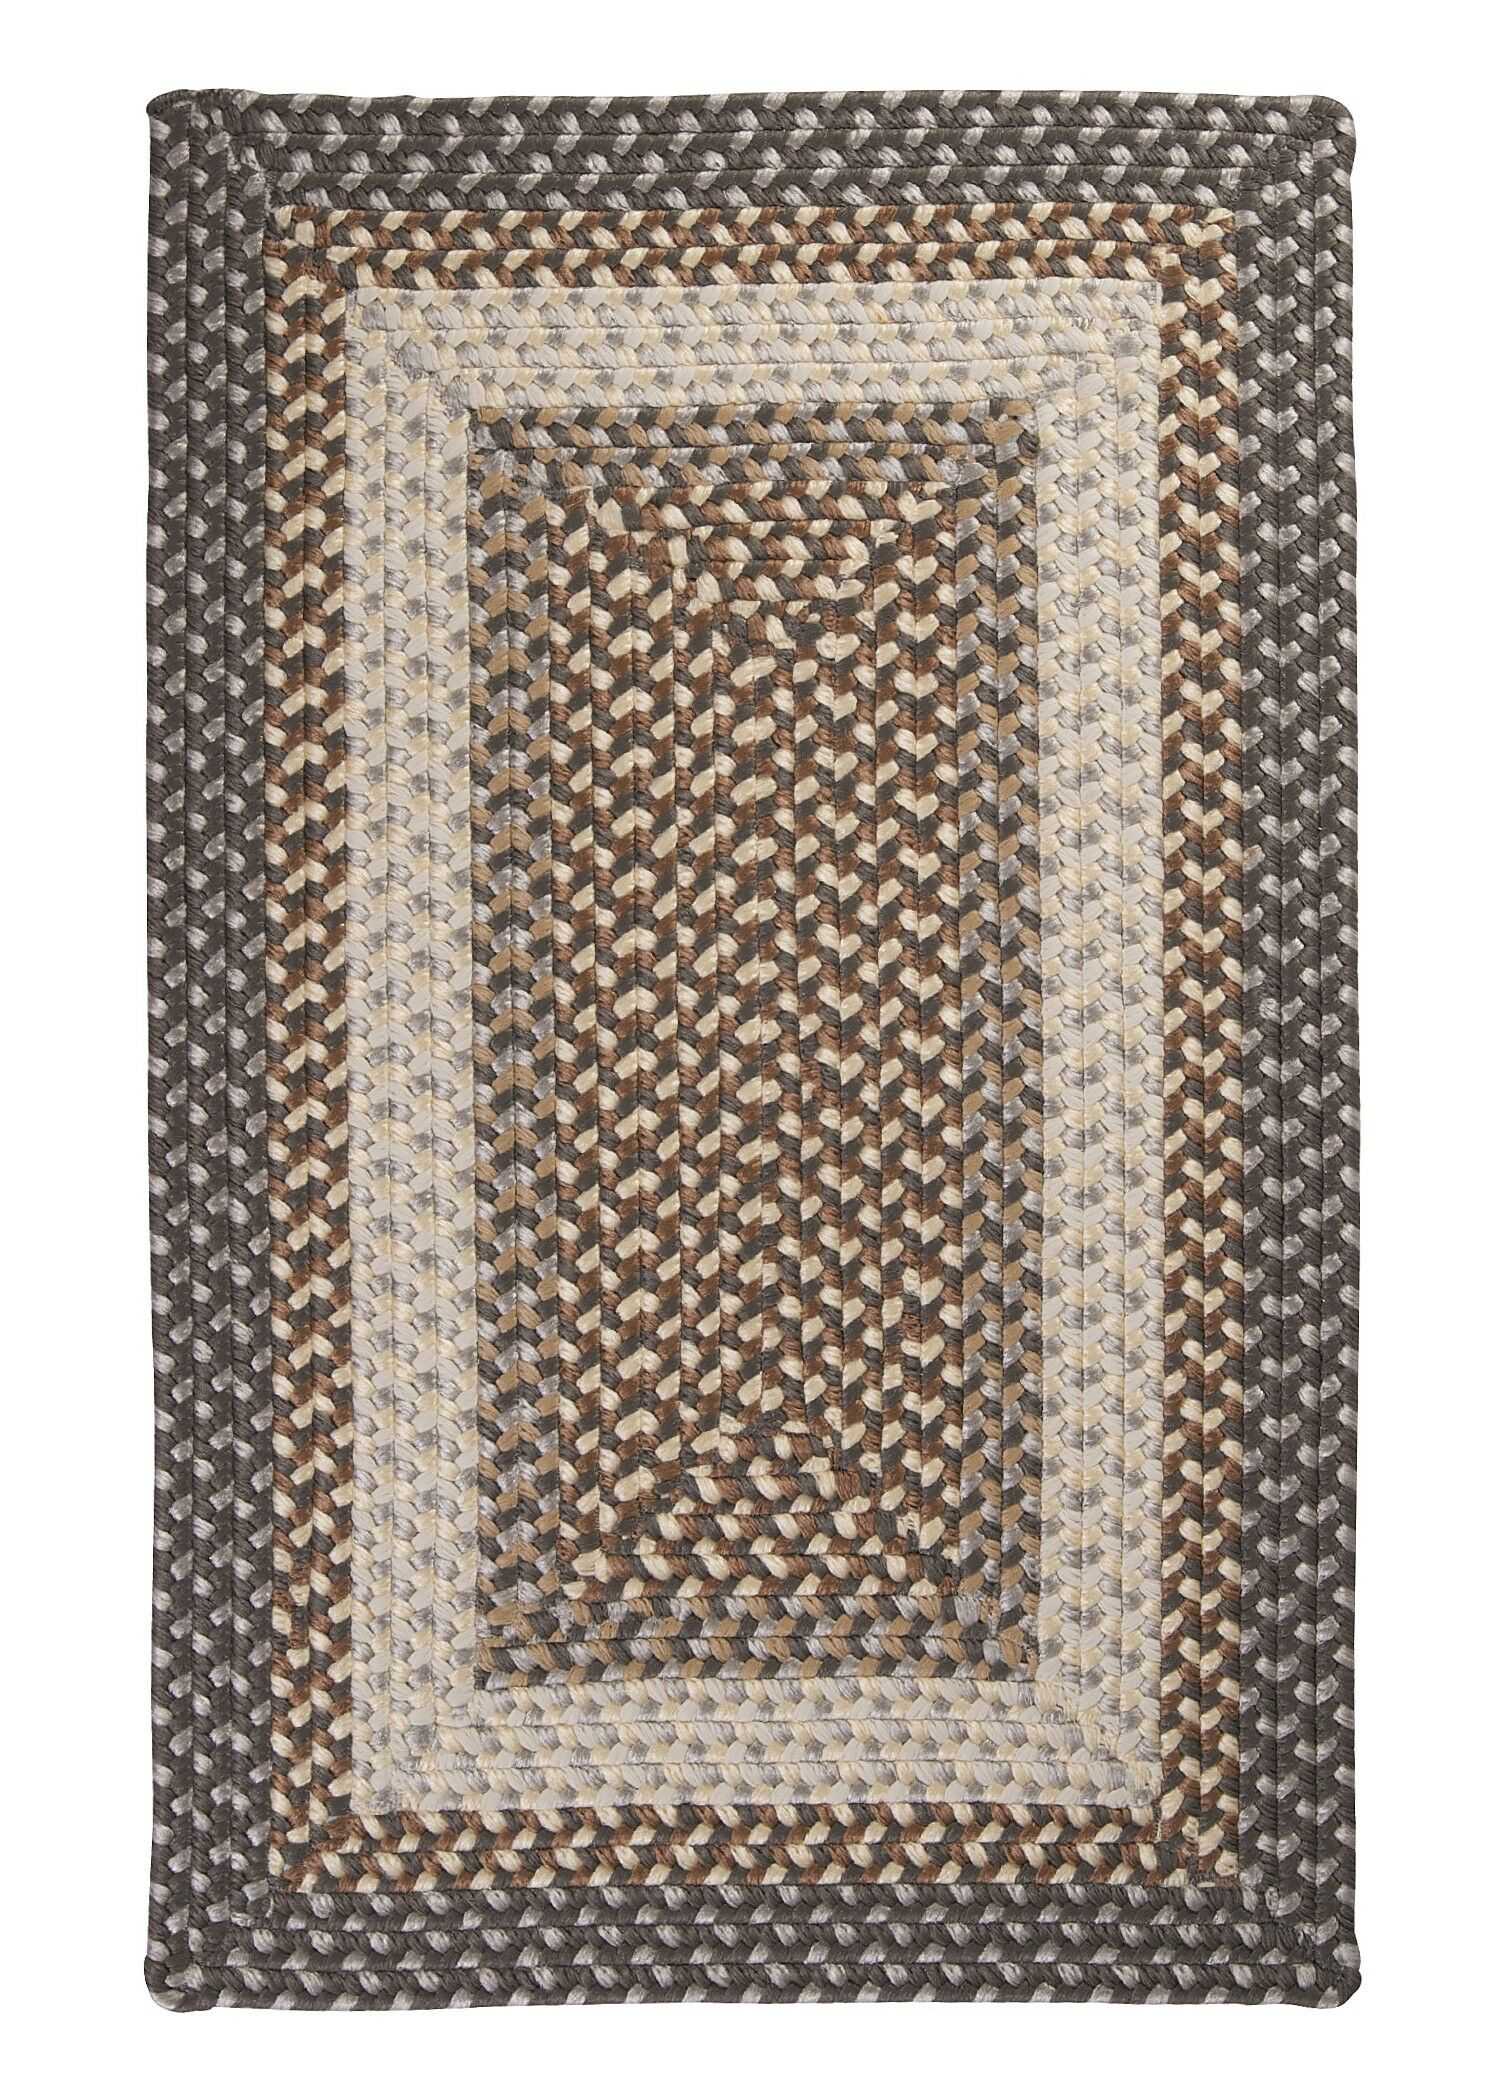 Tiburon Misted Grey Braided Indoor/Outdoor Area Rug Rug Size: Square 12'